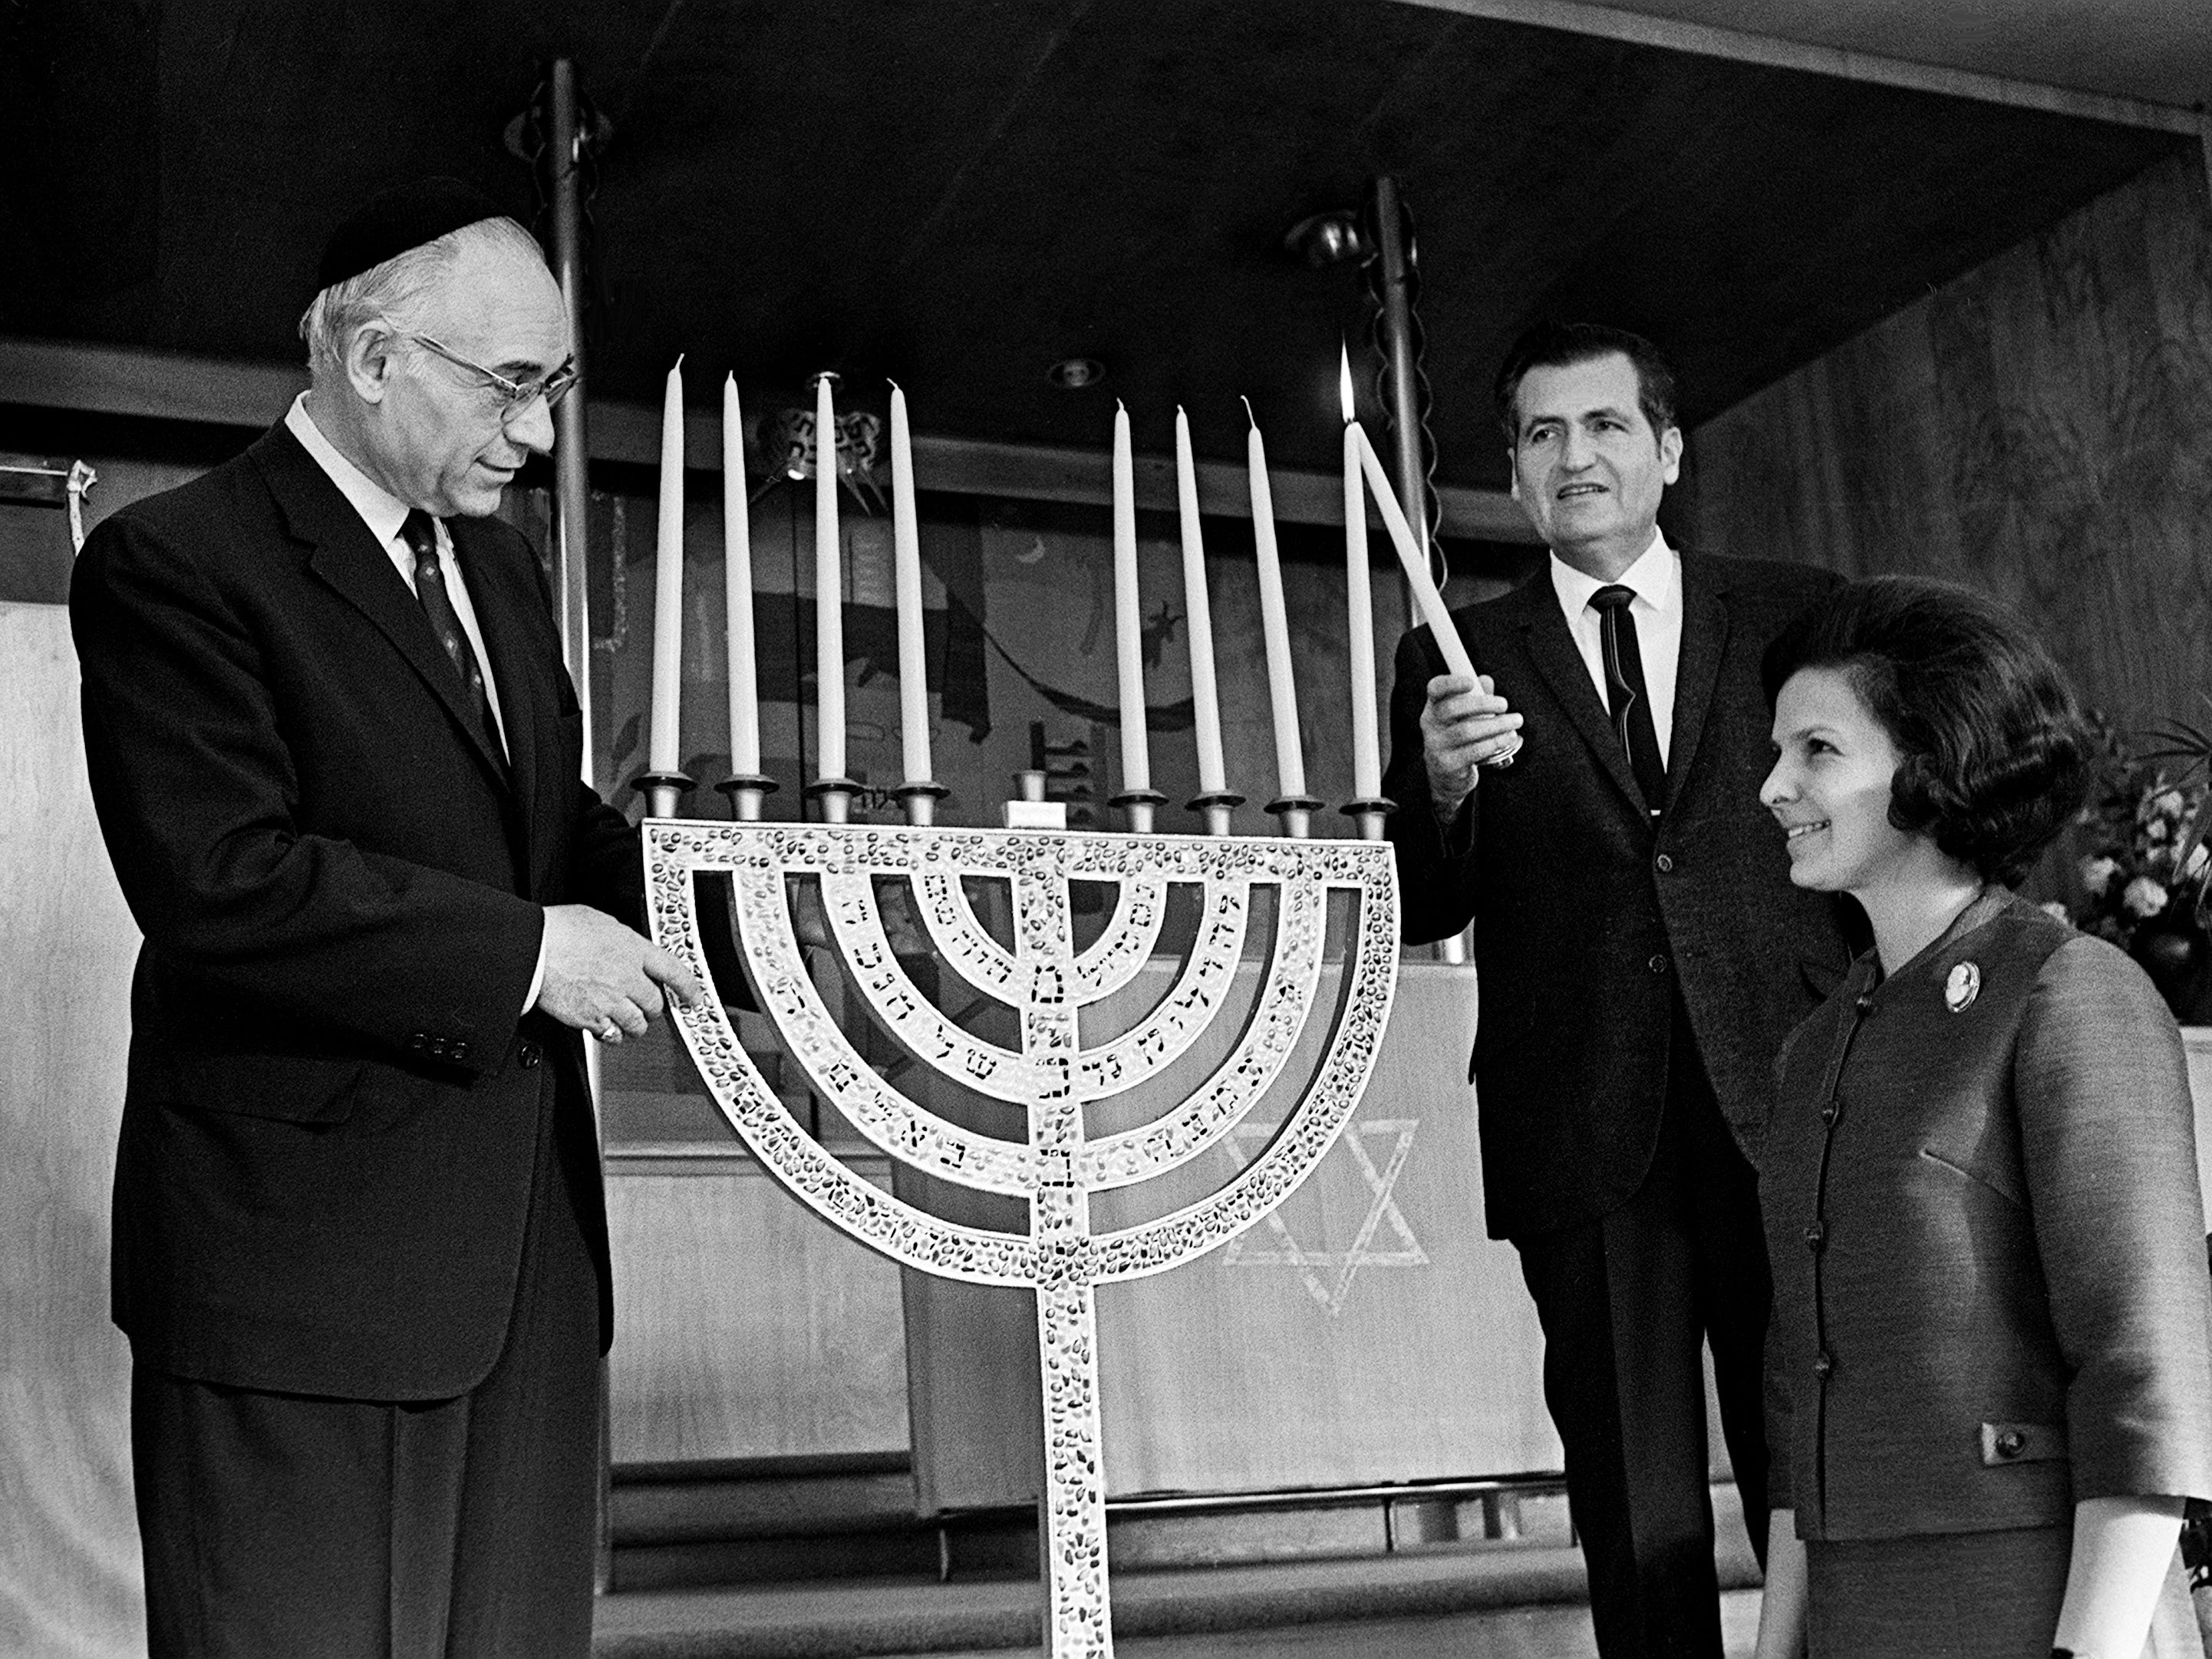 Cantor Bernard Glusman, left, of the West End Synagogue, check the Menorah that he constructed while Rabbi Jerome Kestenbaum, center, checks the candles Dec. 11, 1968 for the upcoming Chanukah. Assisting in the final check is Mrs. Leonard Seloff, president of the West End Sisterhood. The holiday has been celebrated for 2,100 years.